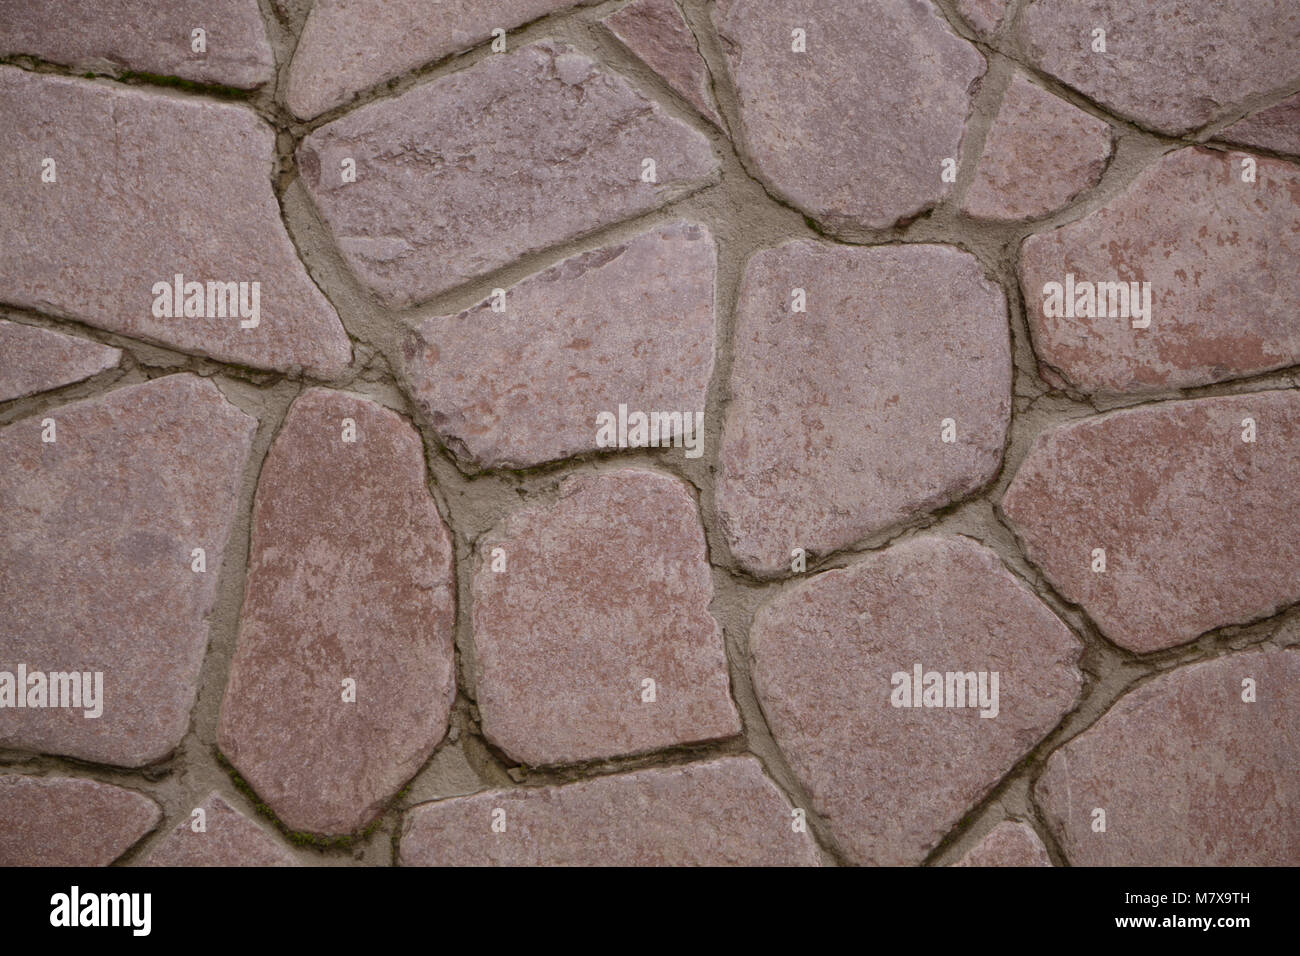 Stone wall of natural stones in different sizes, rustic stone veneer in shades of brown and beige. - Stock Image